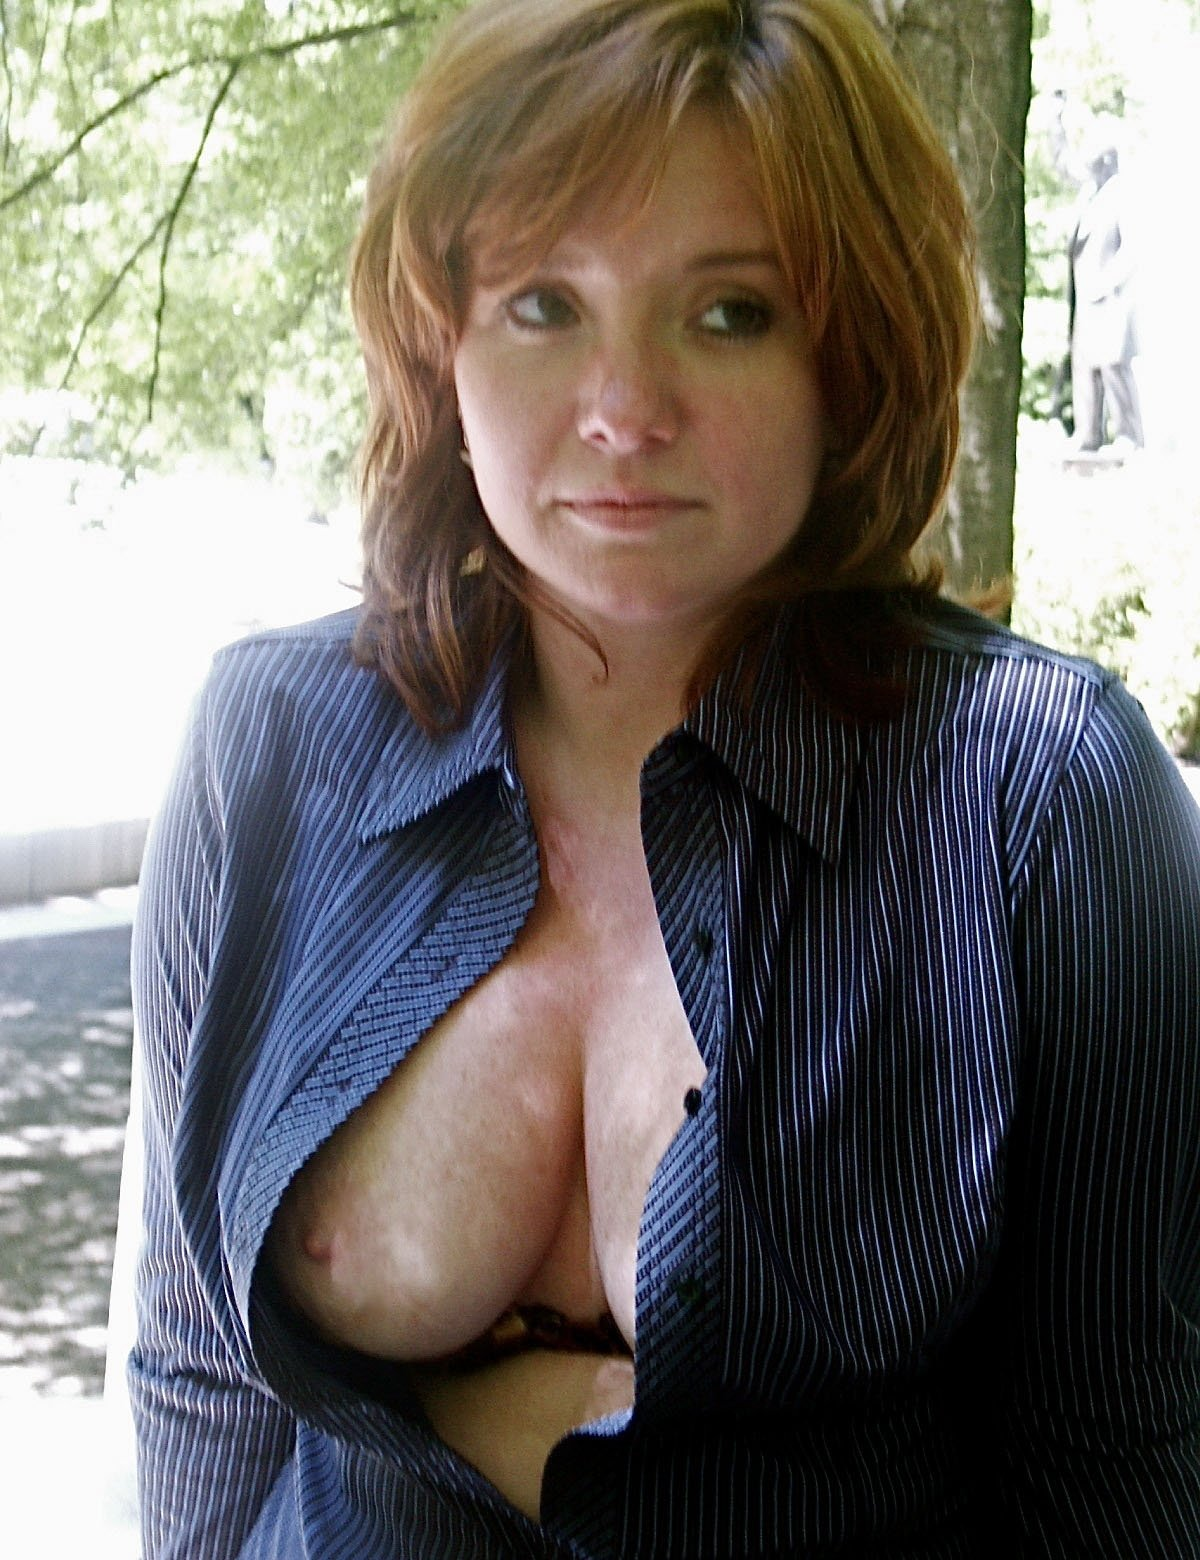 Pictures amateur huge boobs clothed